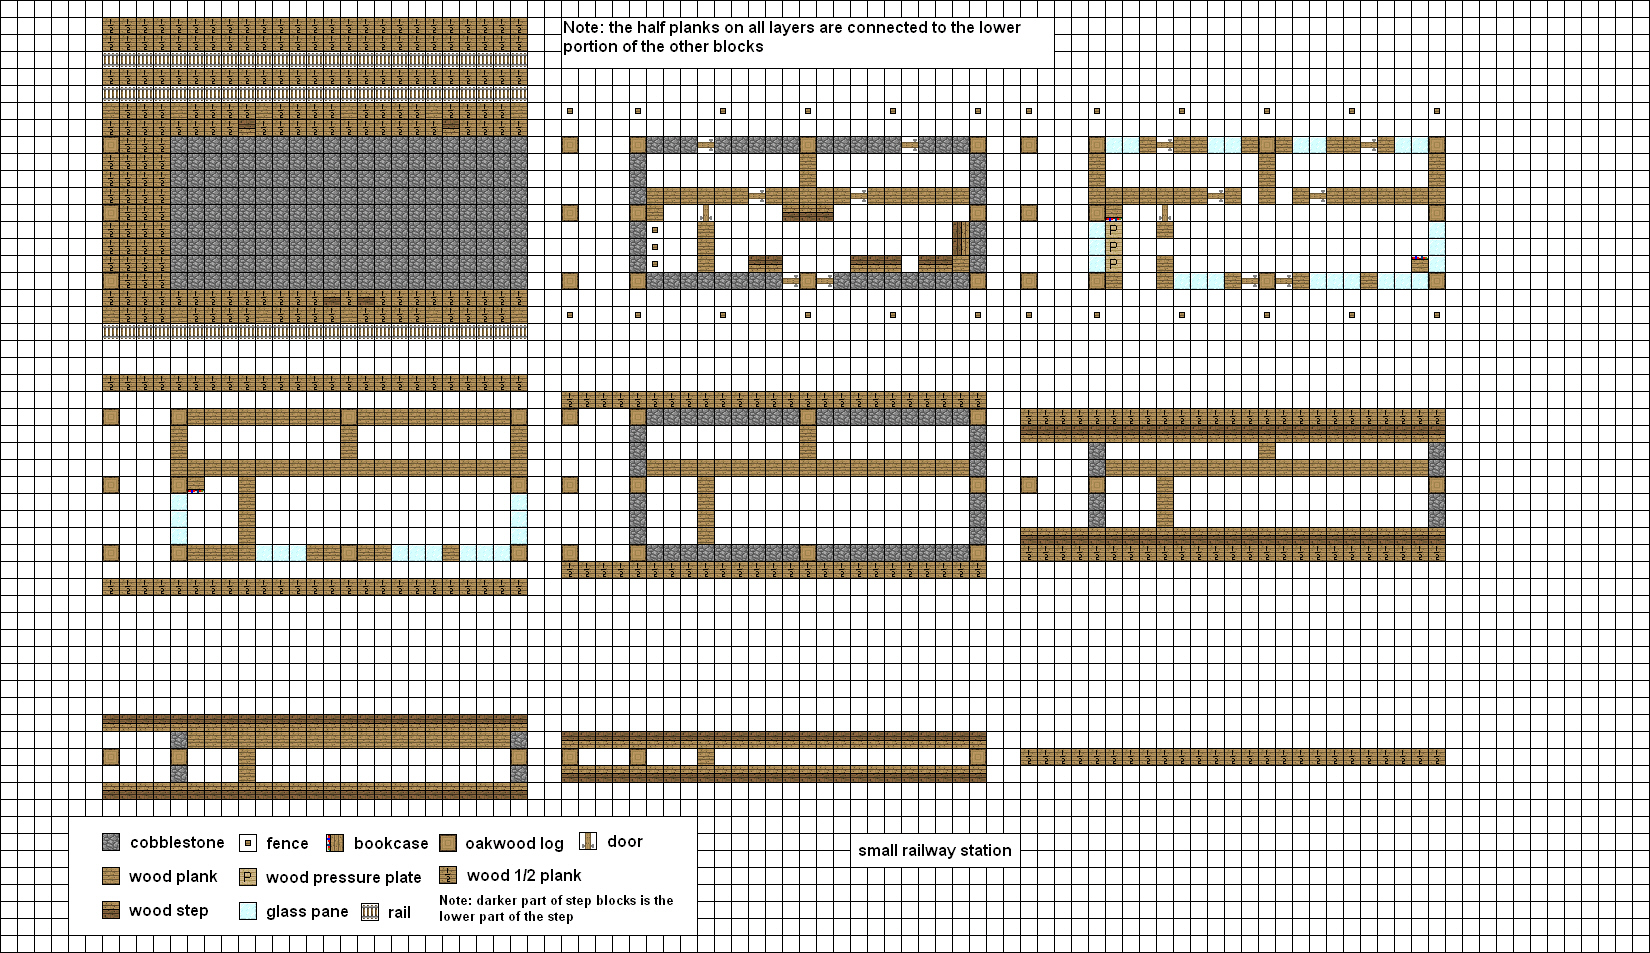 minecraft floorplans small train station by coltcoyote d6qrw2i jpg   1650 953    minecraft   Pinterest. minecraft floorplans small train station by coltcoyote d6qrw2i jpg